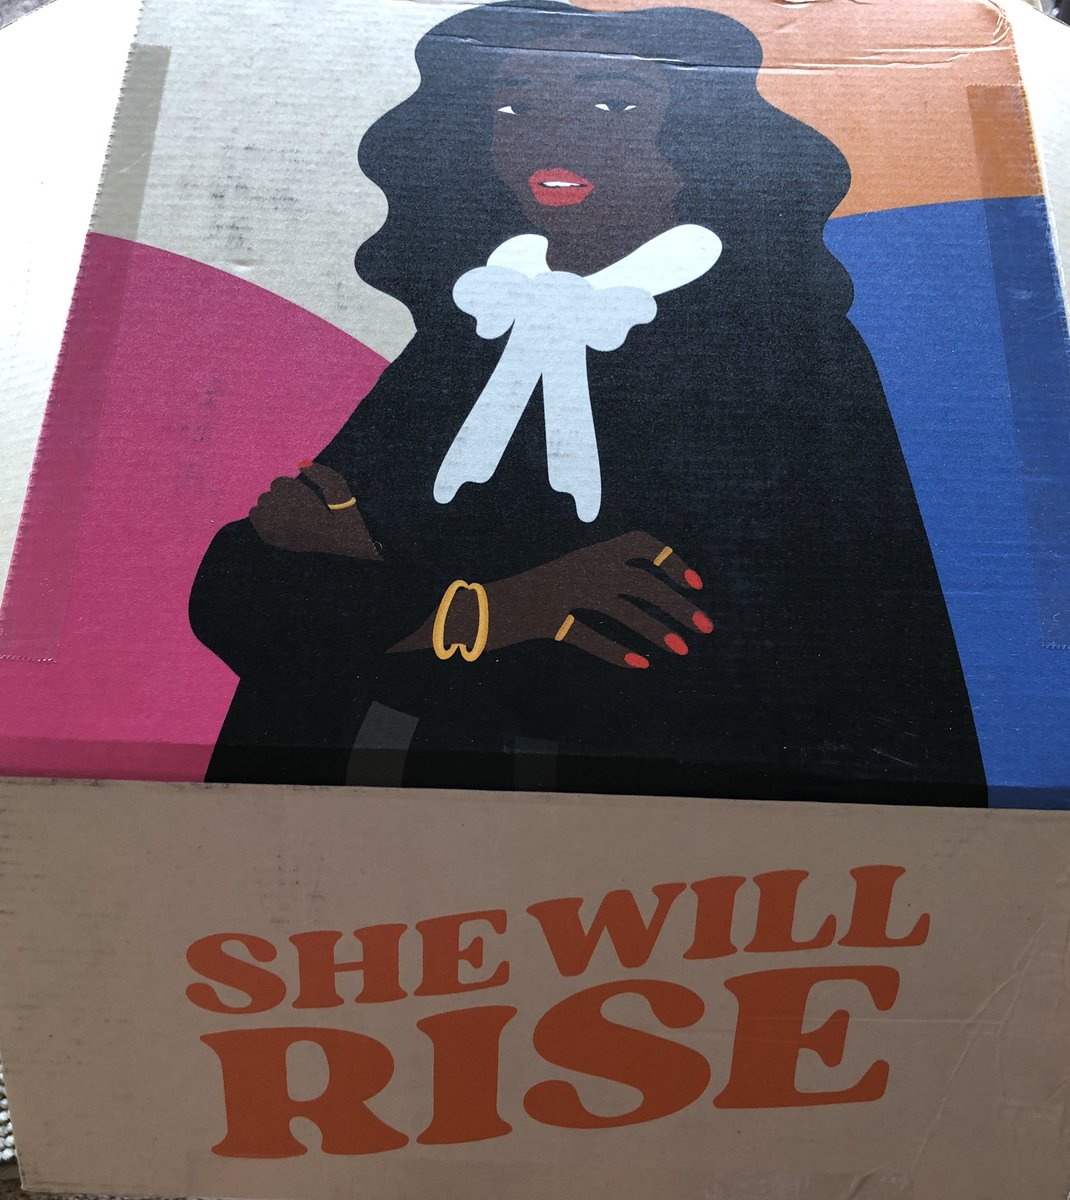 Let's take back this presidency and expand the Supreme Court with Black women. PERIOD. #shewillrise